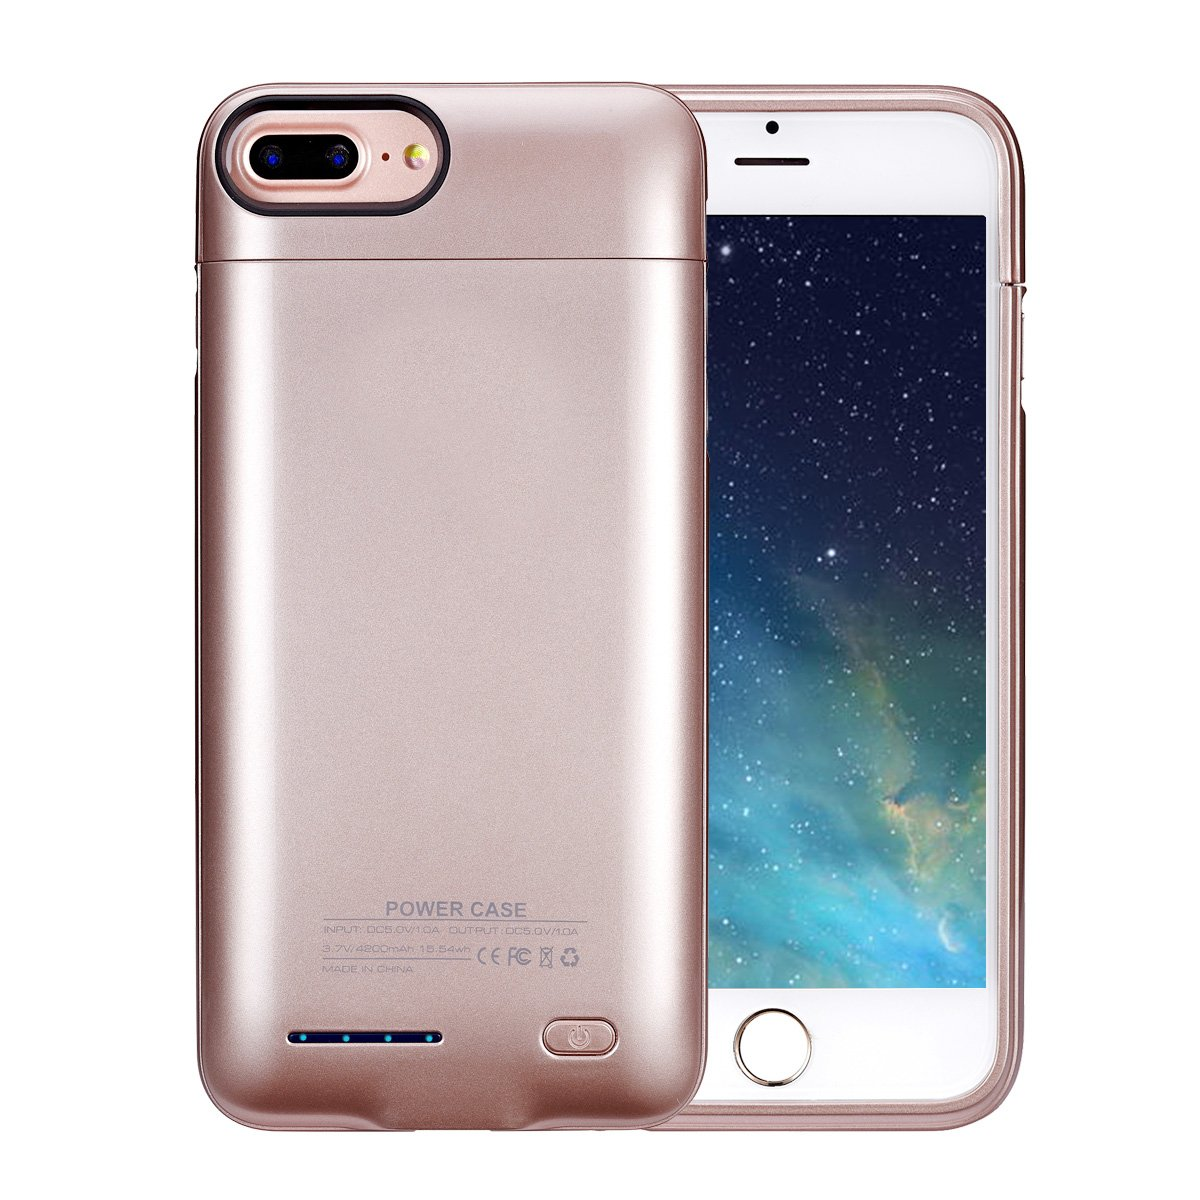 """iPhone 8 Plus / 7 Plus / 6s Plus高容量バッテリーケース超スリム拡張バッテリーケース4200 mAh For Iphone 8 plus / 7 Plus / 6s Plus外部ジュースパック充電器ケース5.5インチ B074FT1VW2 5.5"""" (A-color)"""